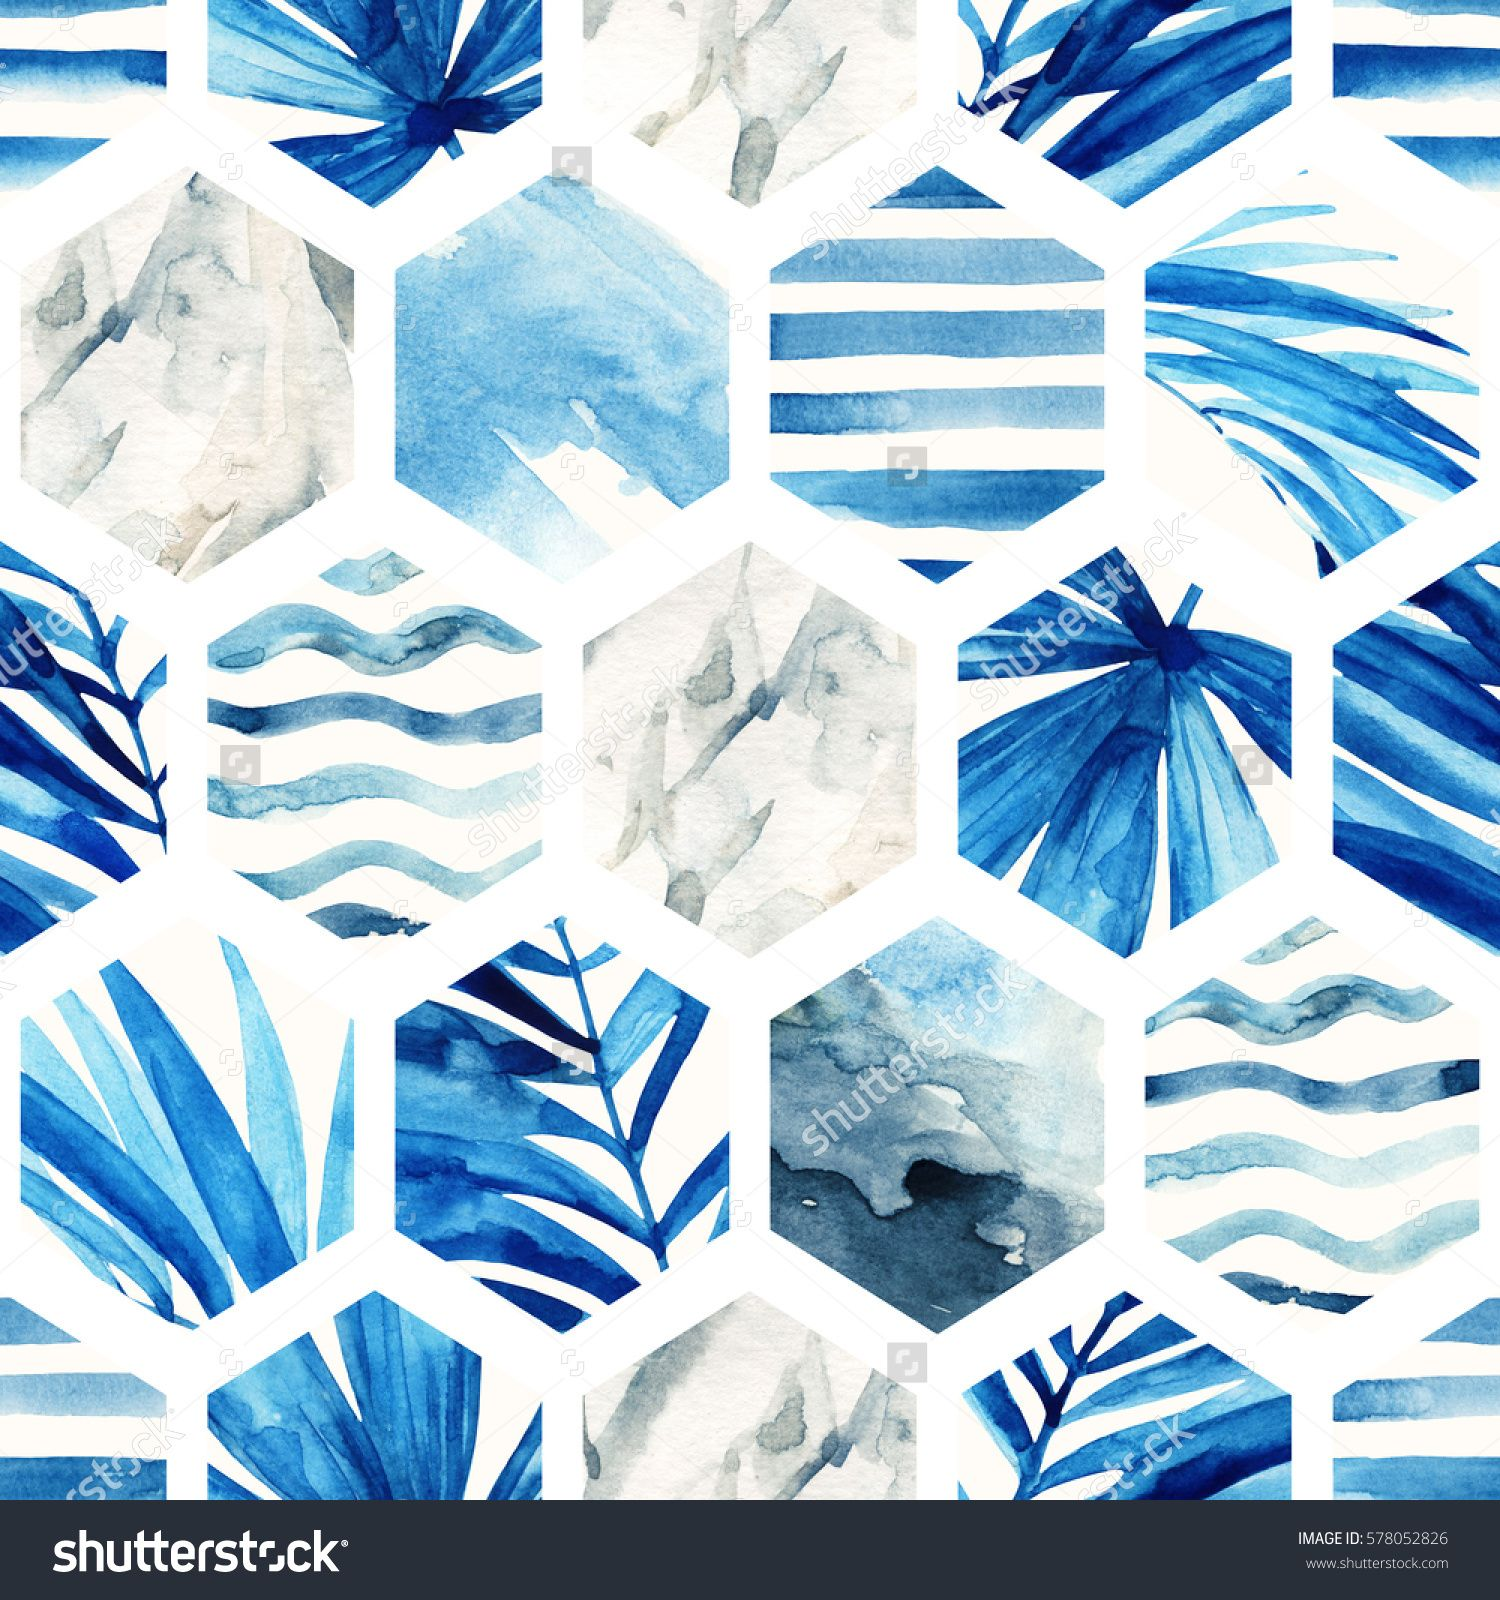 Abstract geometric seamless pattern on light background